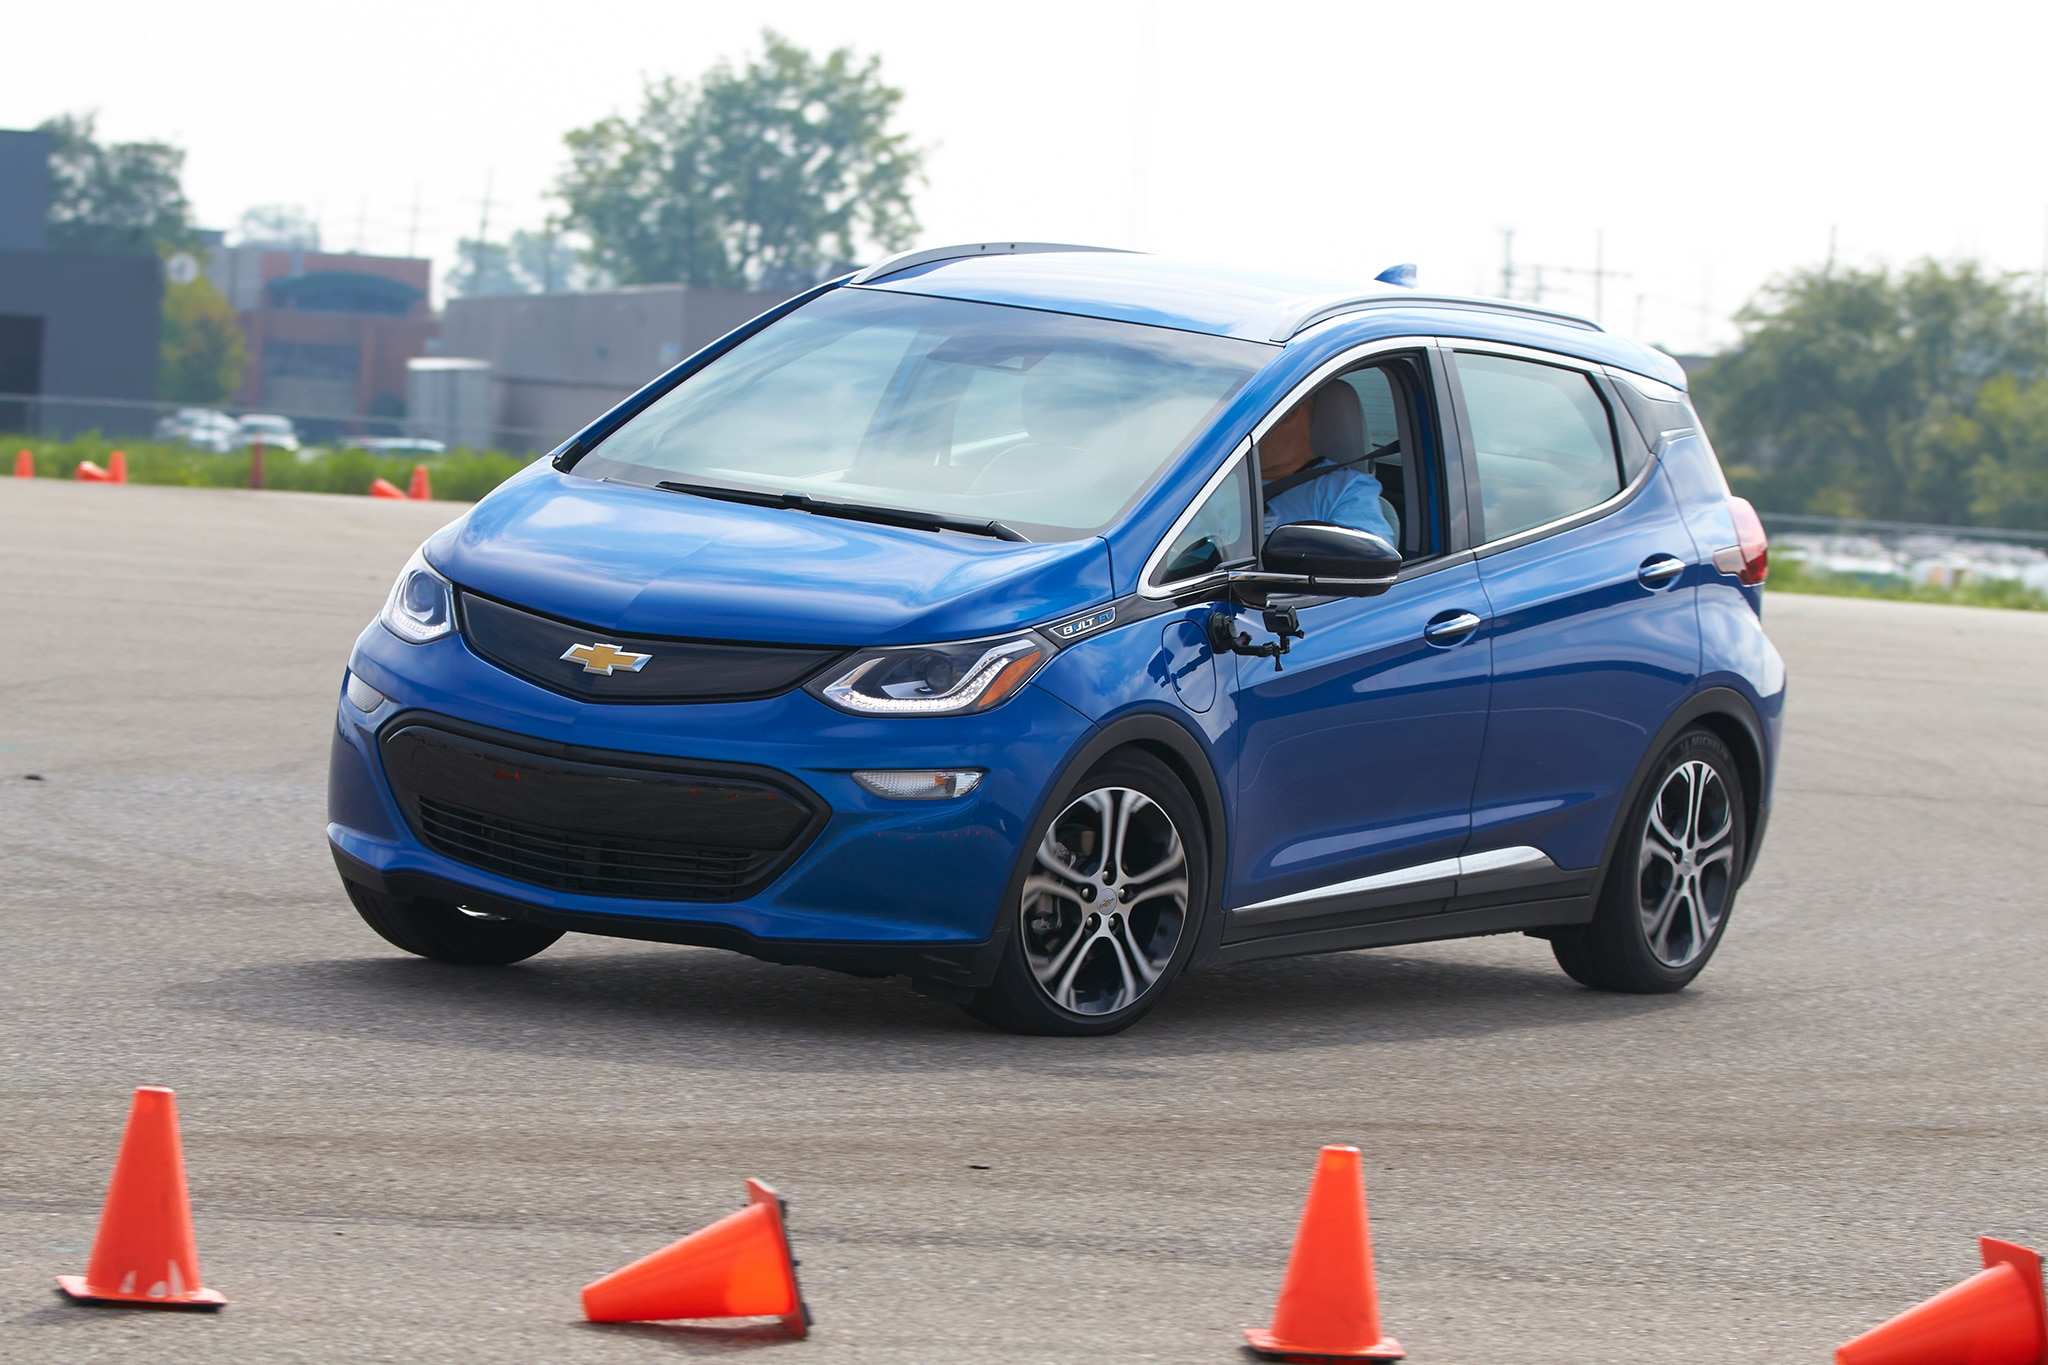 2017 Chevrolet Bolt EV Front Three Quarter In Motion 07